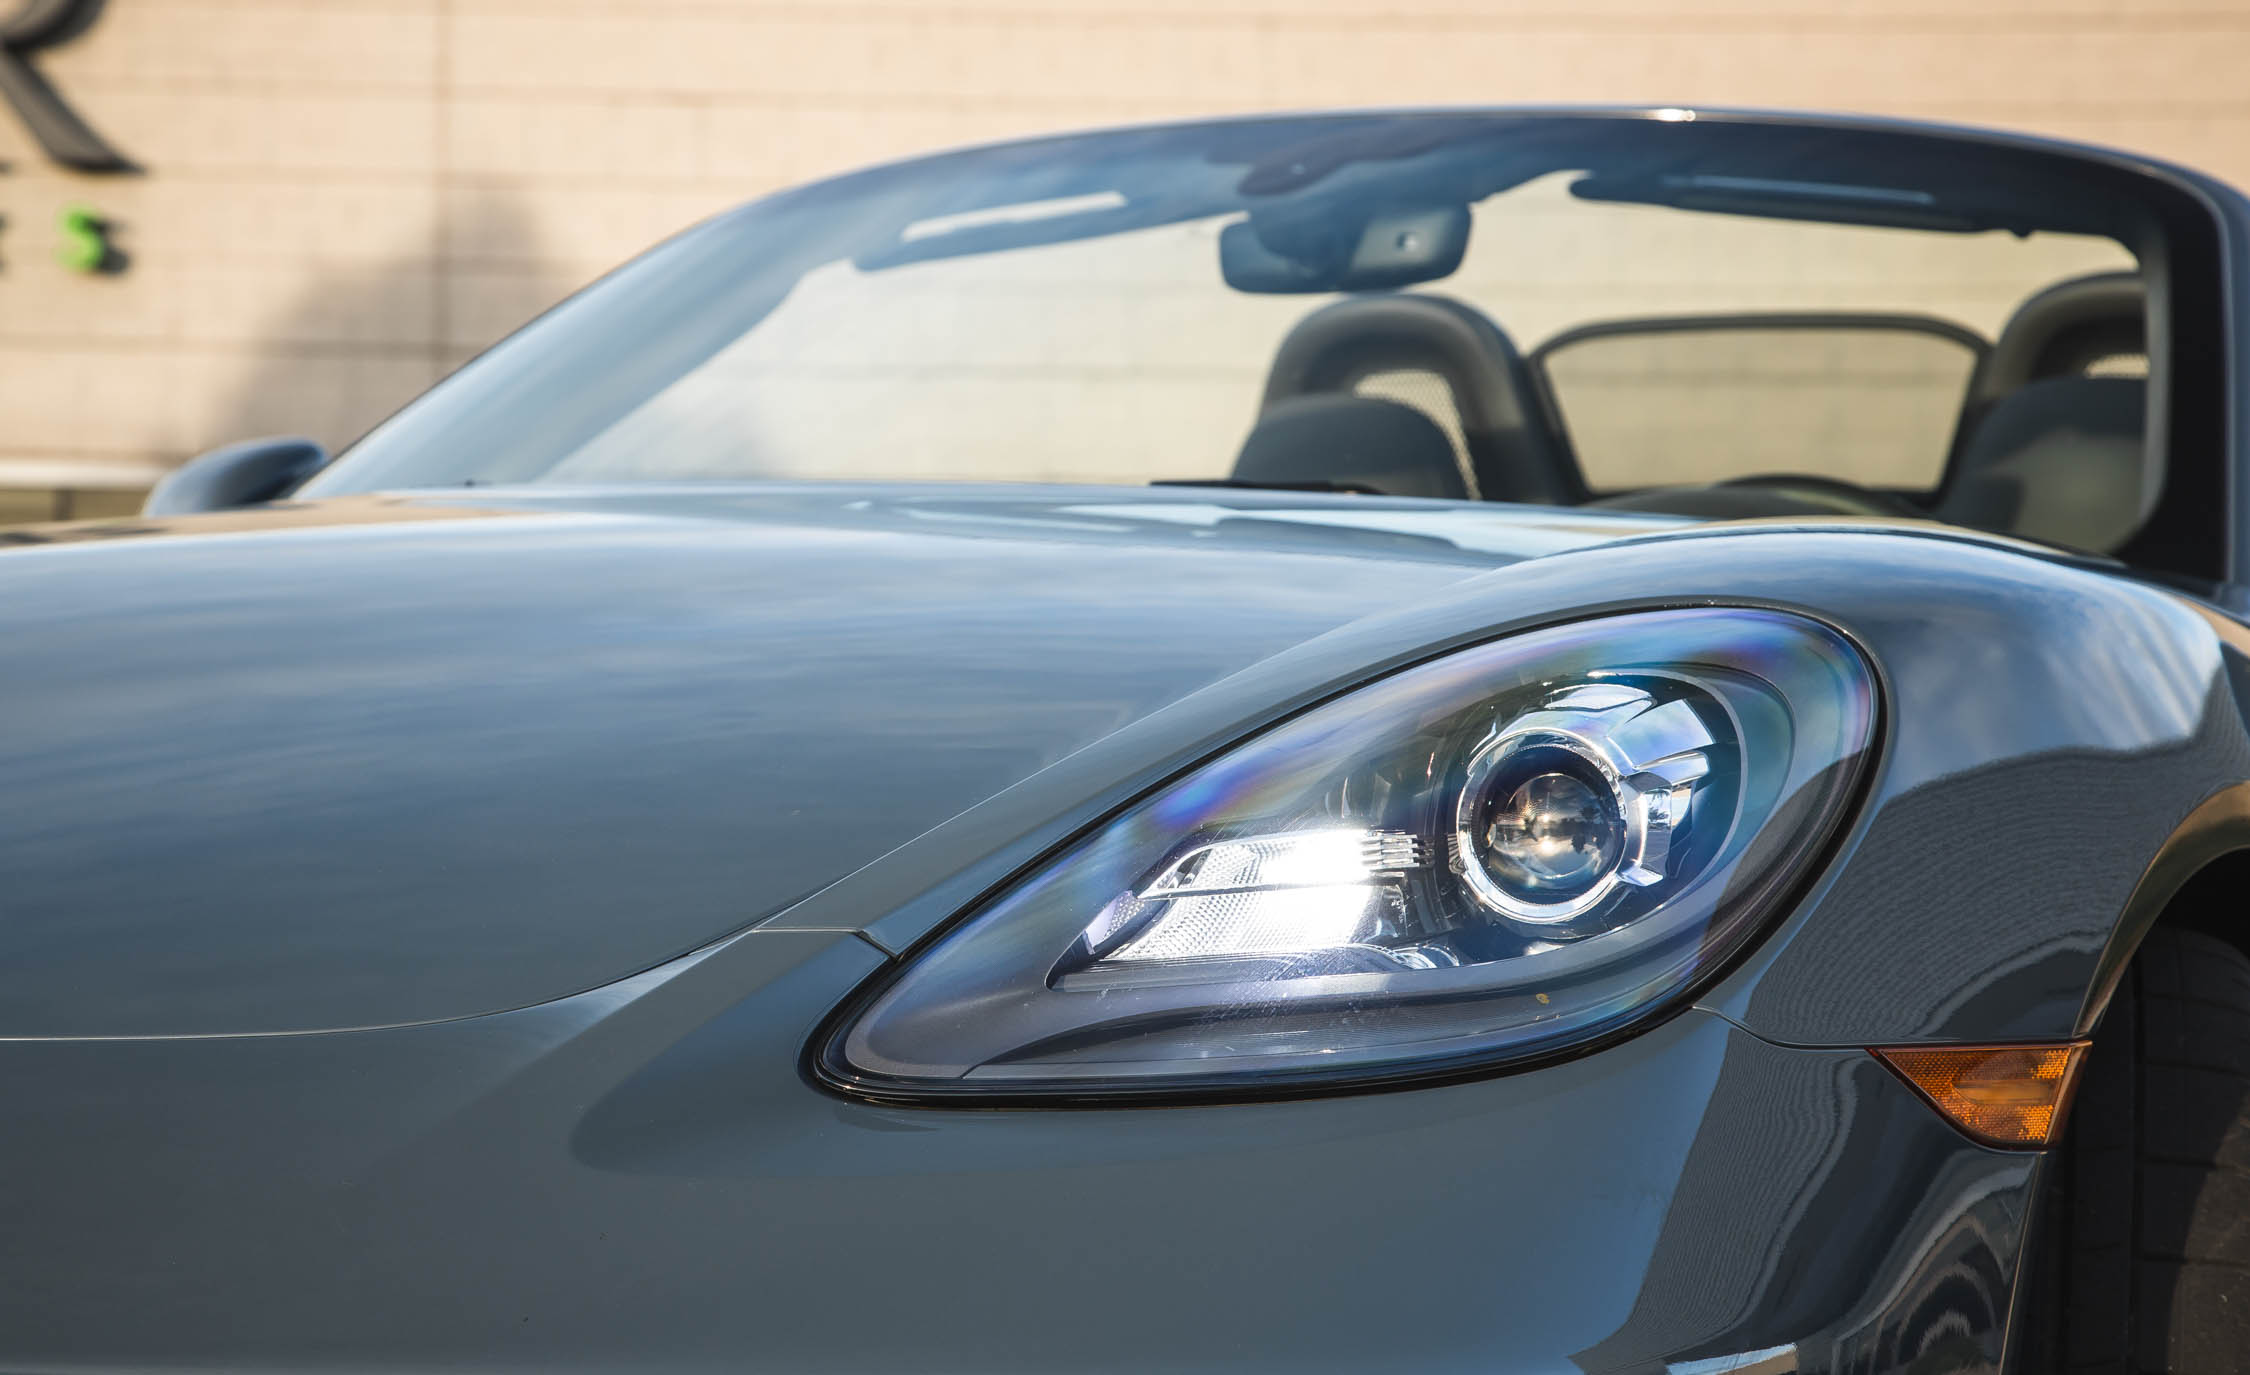 2017 Porsche 718 Boxster S Exterior View Headlight (View 27 of 71)